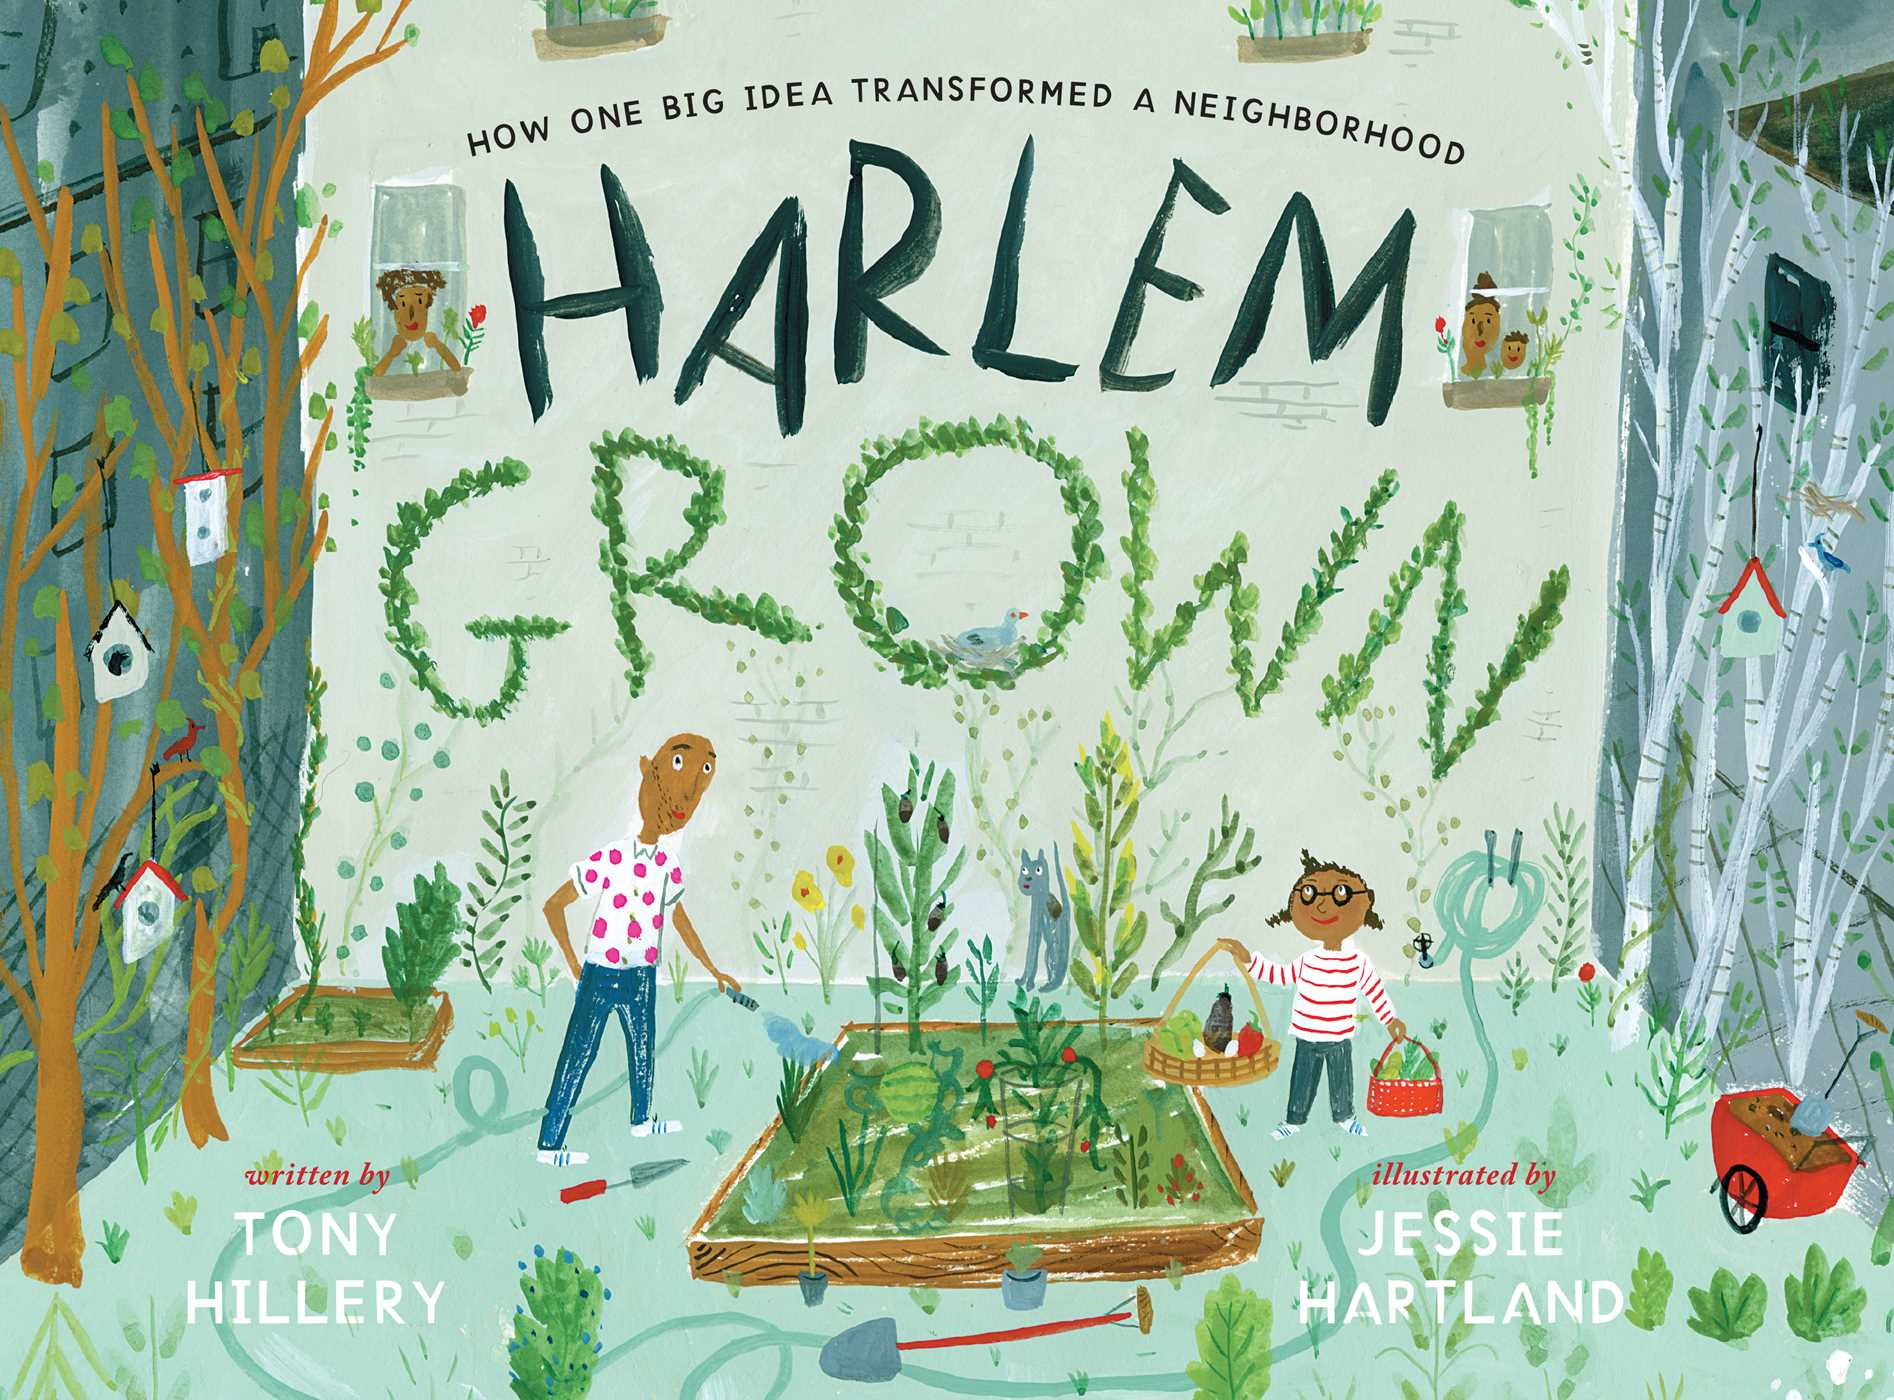 Harlem Grown: How One Big Idea Transformed a Neighborhood by Tony Hillery